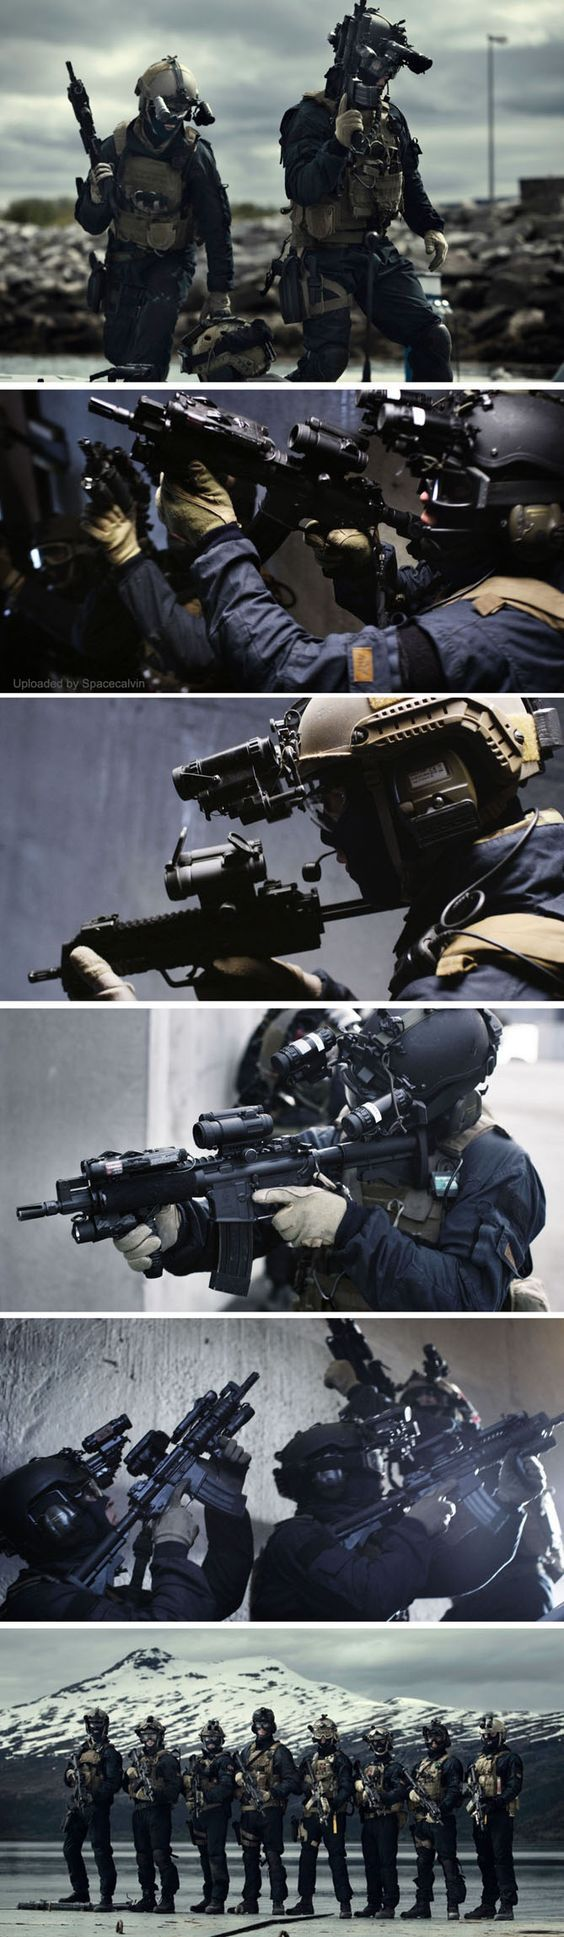 Military special forces gear - Marinejeger Kommandoen Mjk Norwegian Special Forces